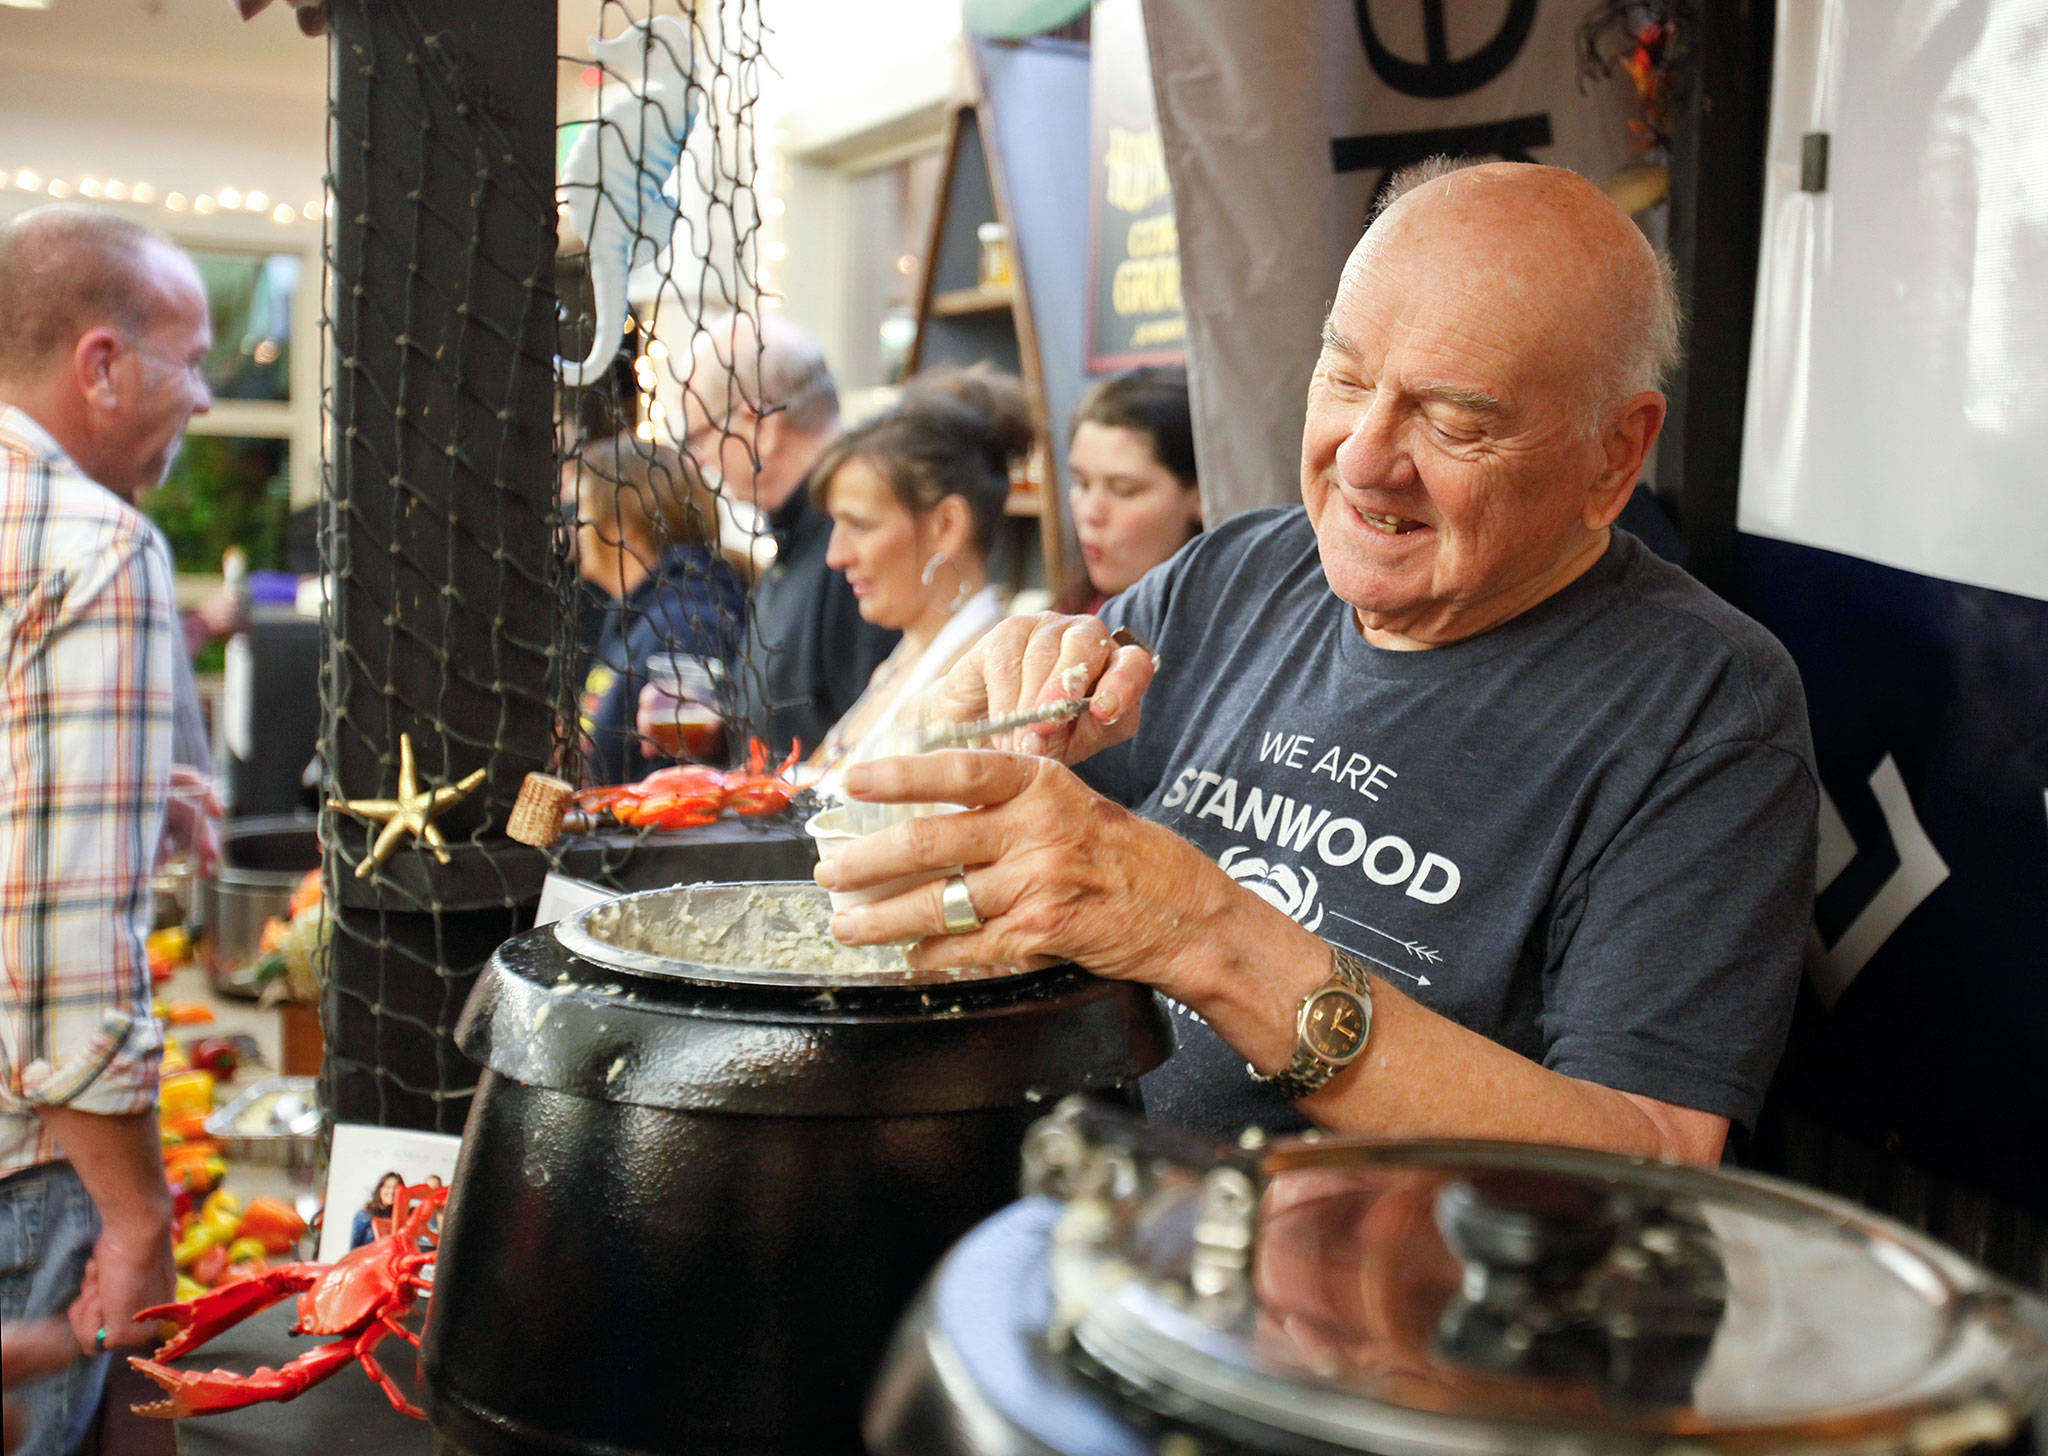 David Dannenberg serves chowder from the Windermere Real Estate Stanwood and Camano Island booth at the 23rd annual Chili Chowder Cook-Off. The event, held Nov. 10 at the Camano Center on Camano Island, drew a record 1,761 people to vote on chili and chowder made by 24 contestants. (Evan Thompson / The Herald)